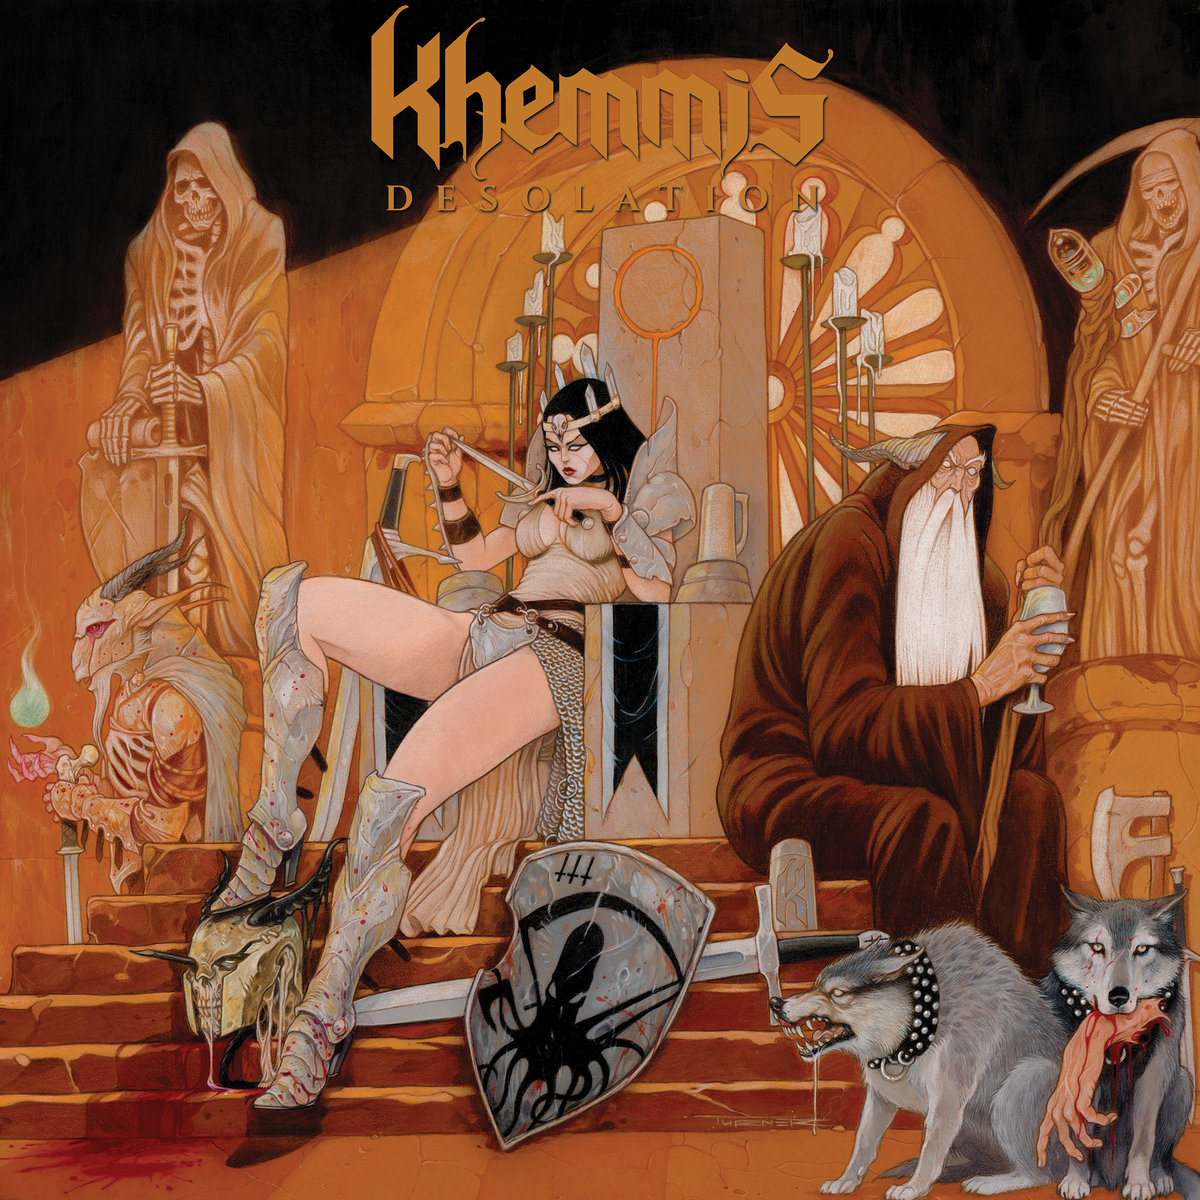 Khemmis metal album art